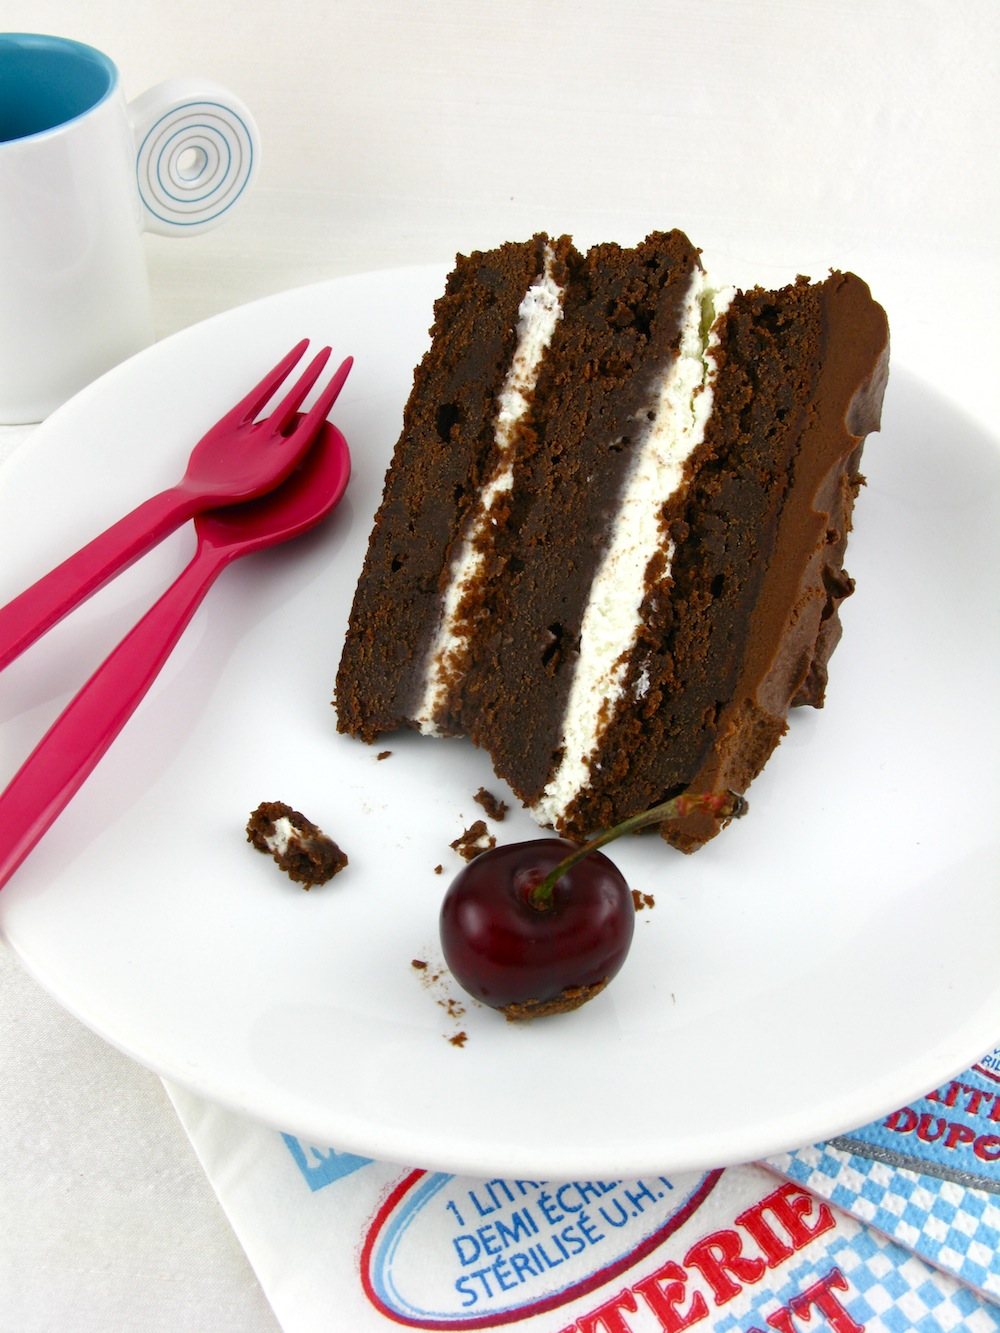 Chocolate Cake With Chocolate Truffle Middle And Top